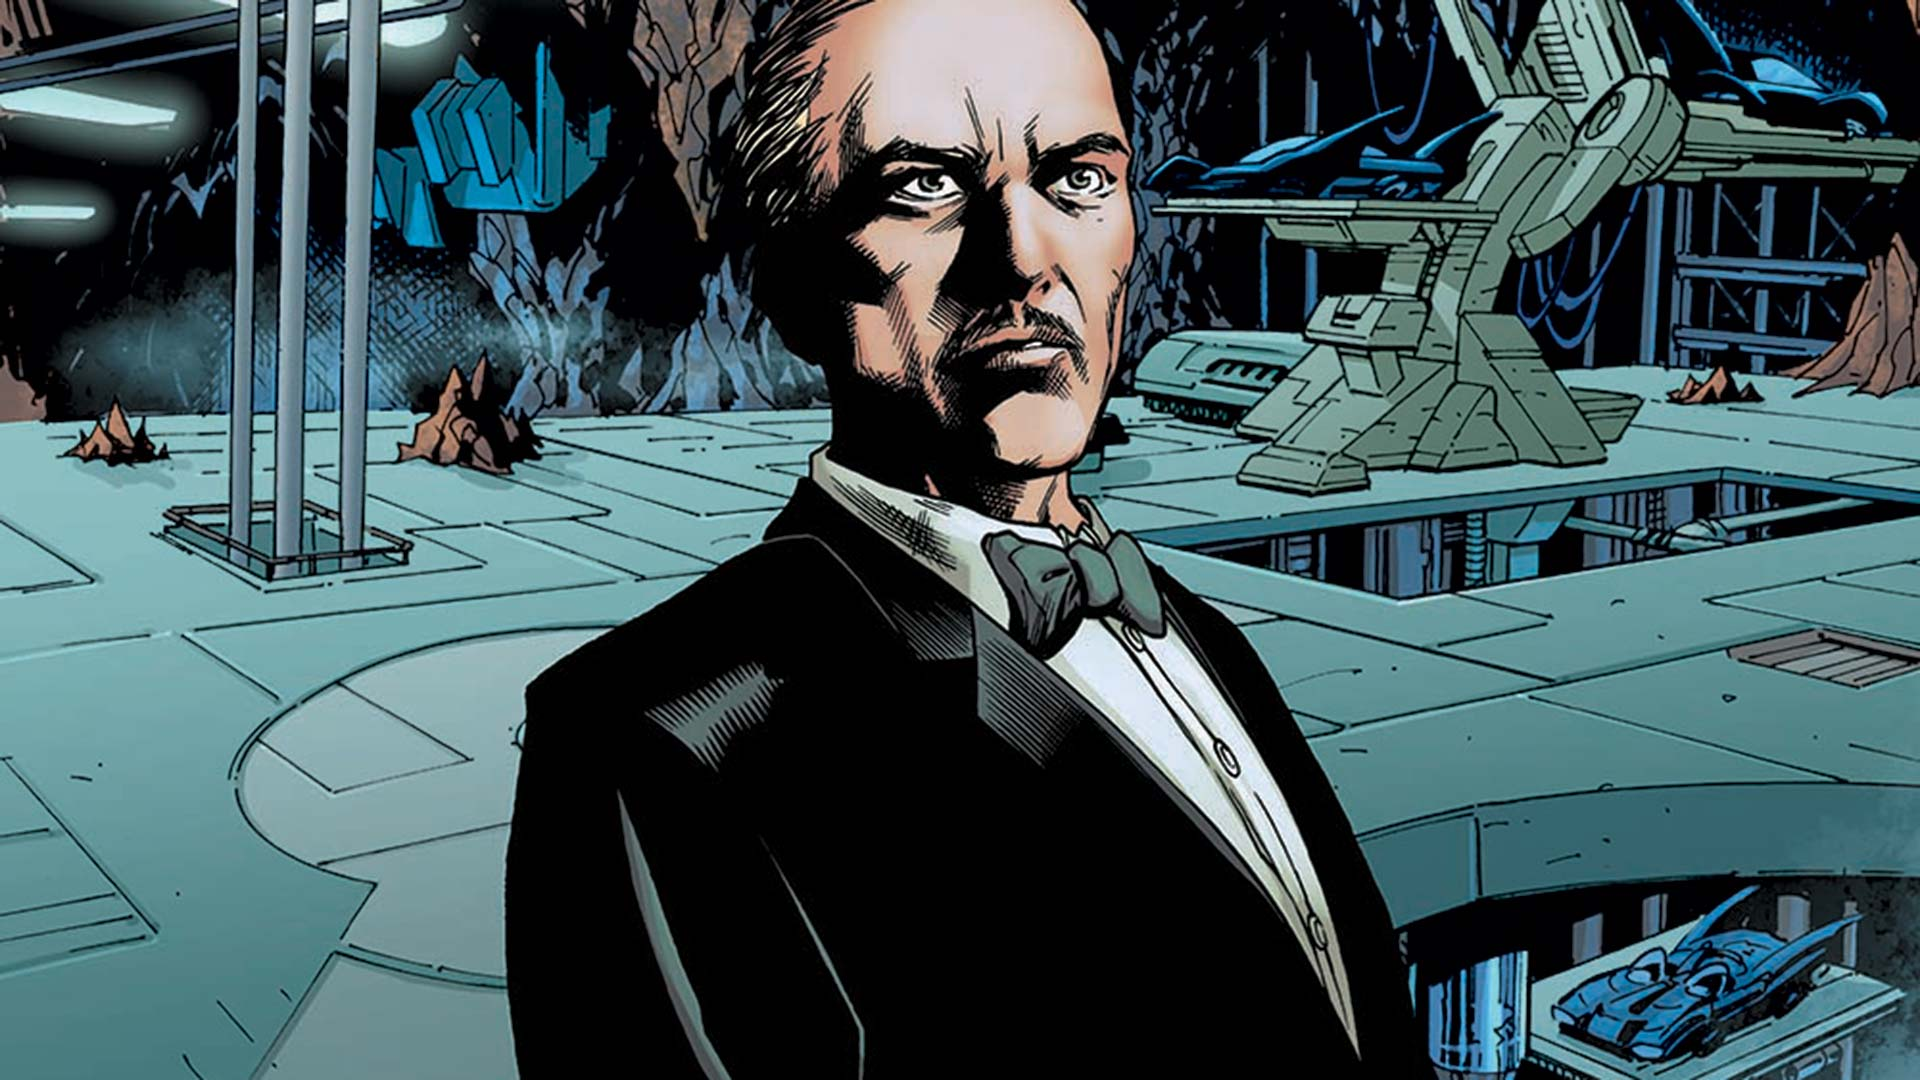 Pennyworth: Stars Announced for EPIX Prequel Series About Batman's Butler